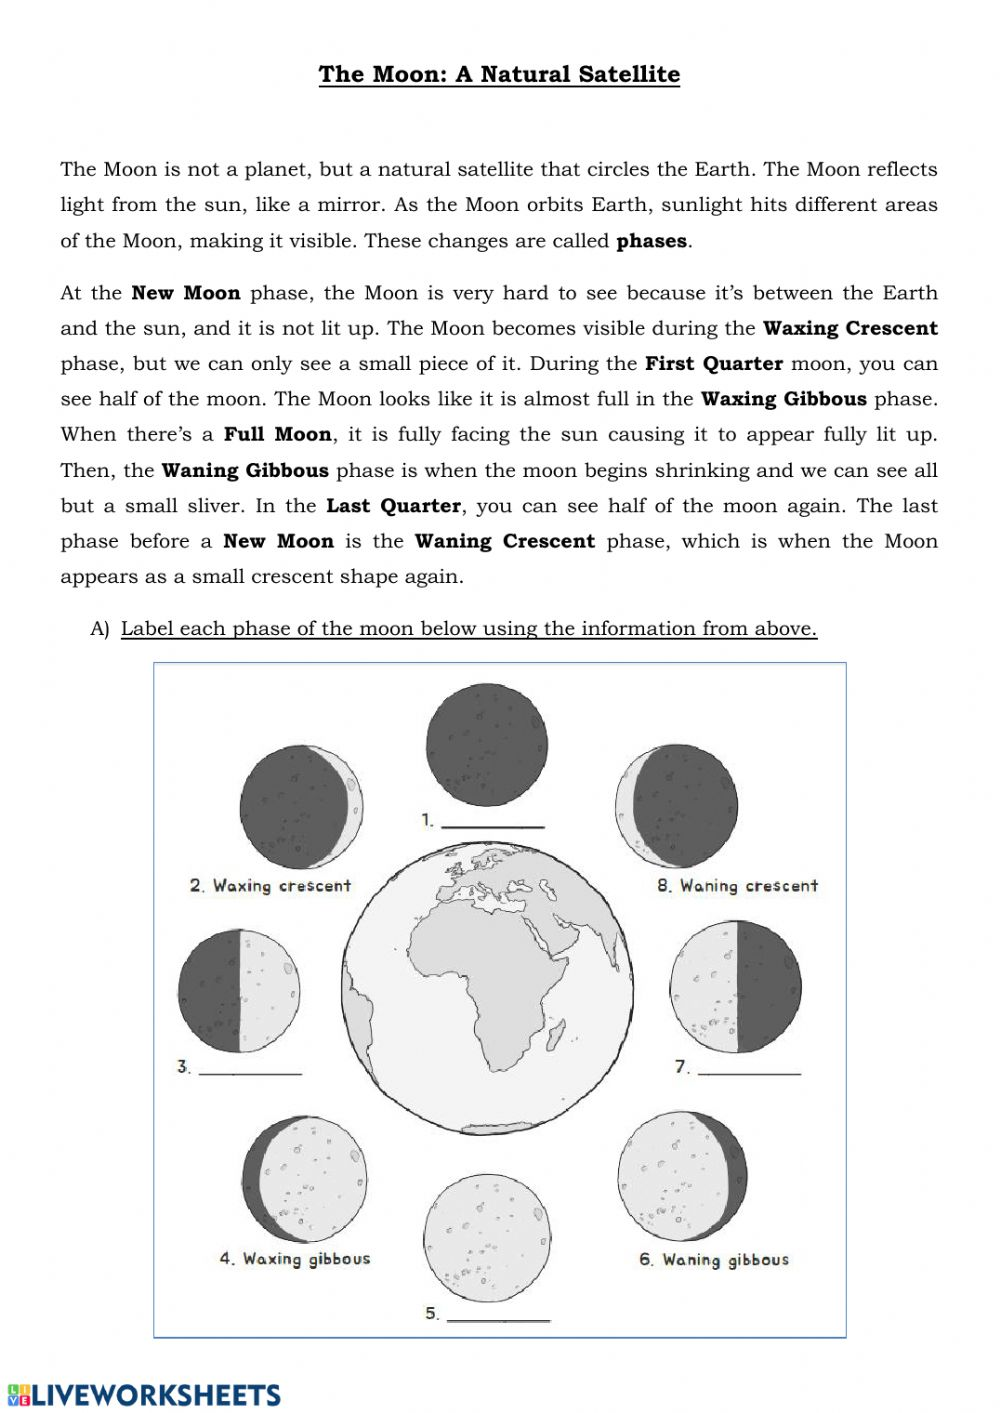 medium resolution of The Moon Phases and Eclipse worksheet